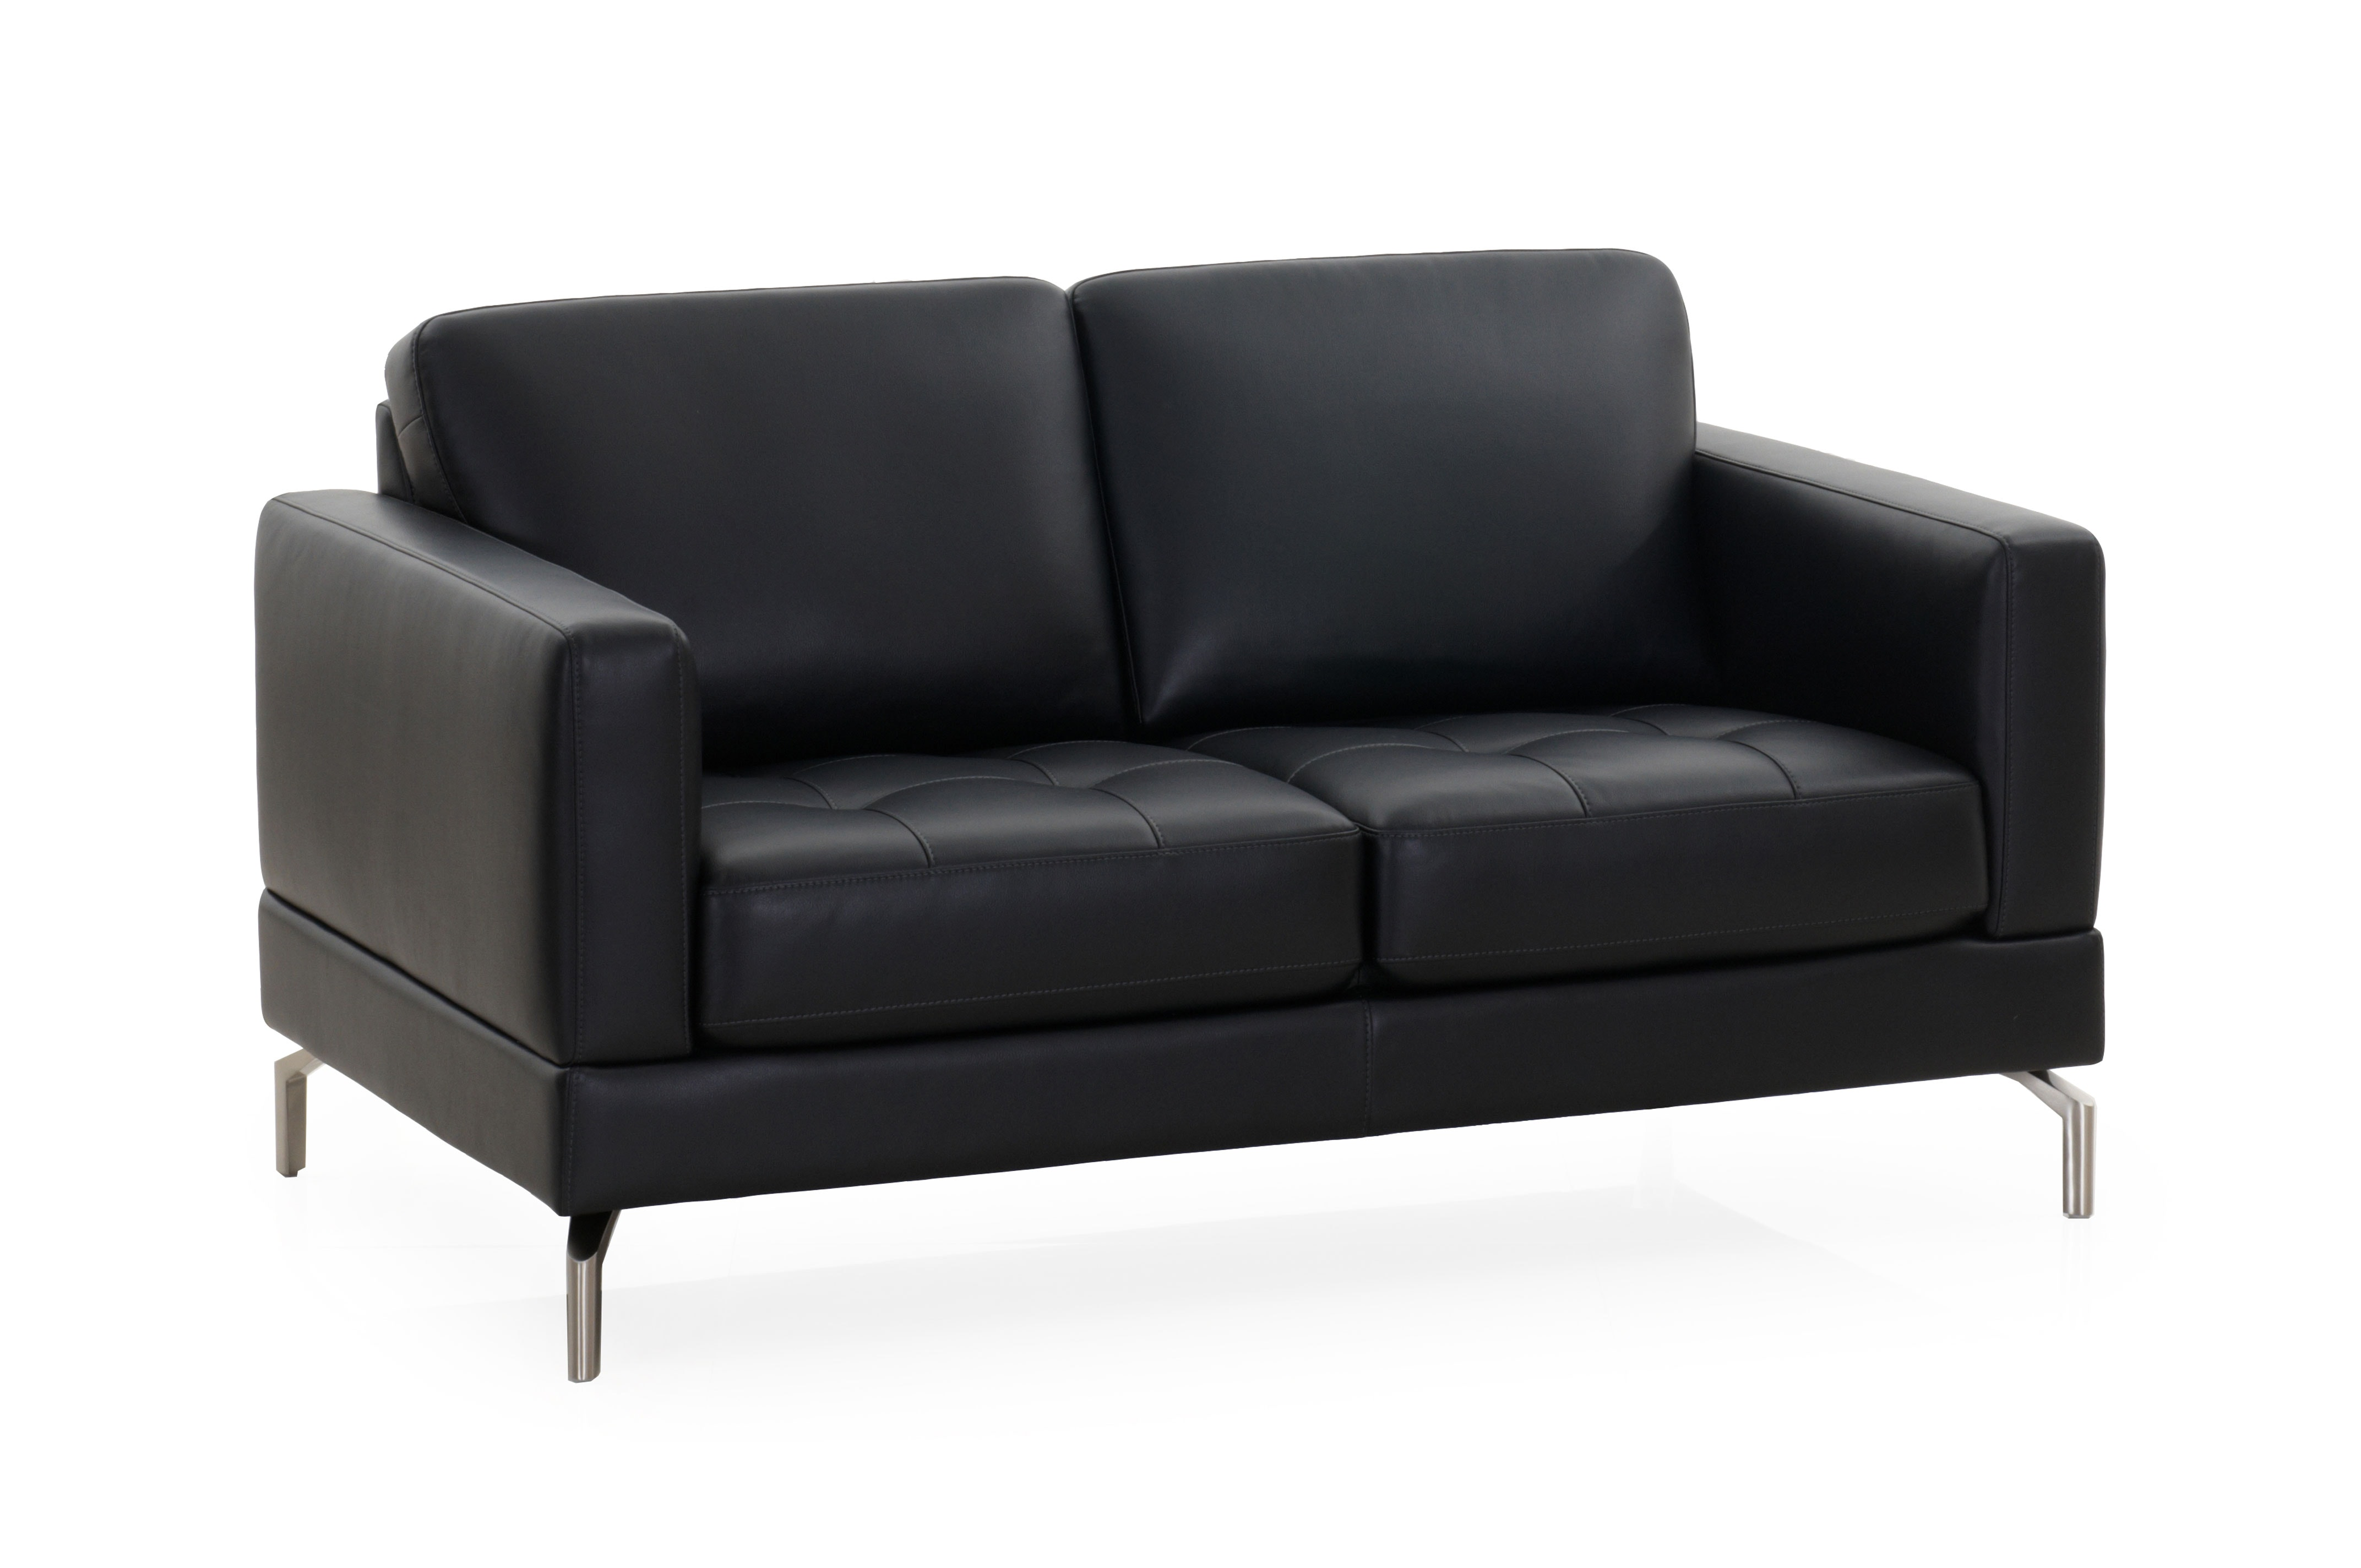 Spencer 2 Seater Fabric Sofa